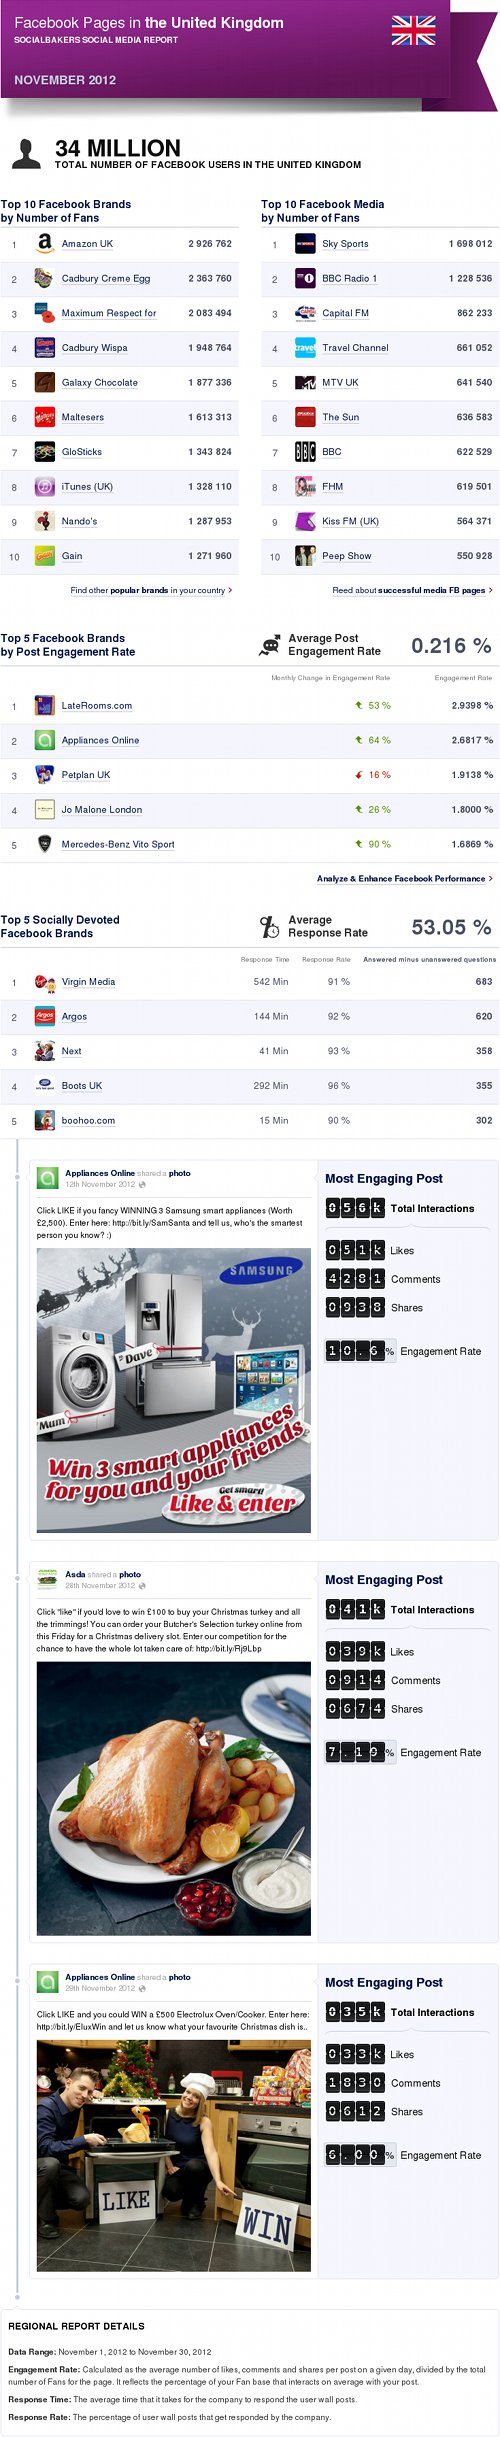 Top Facebook Pages in the UK, Nov '12